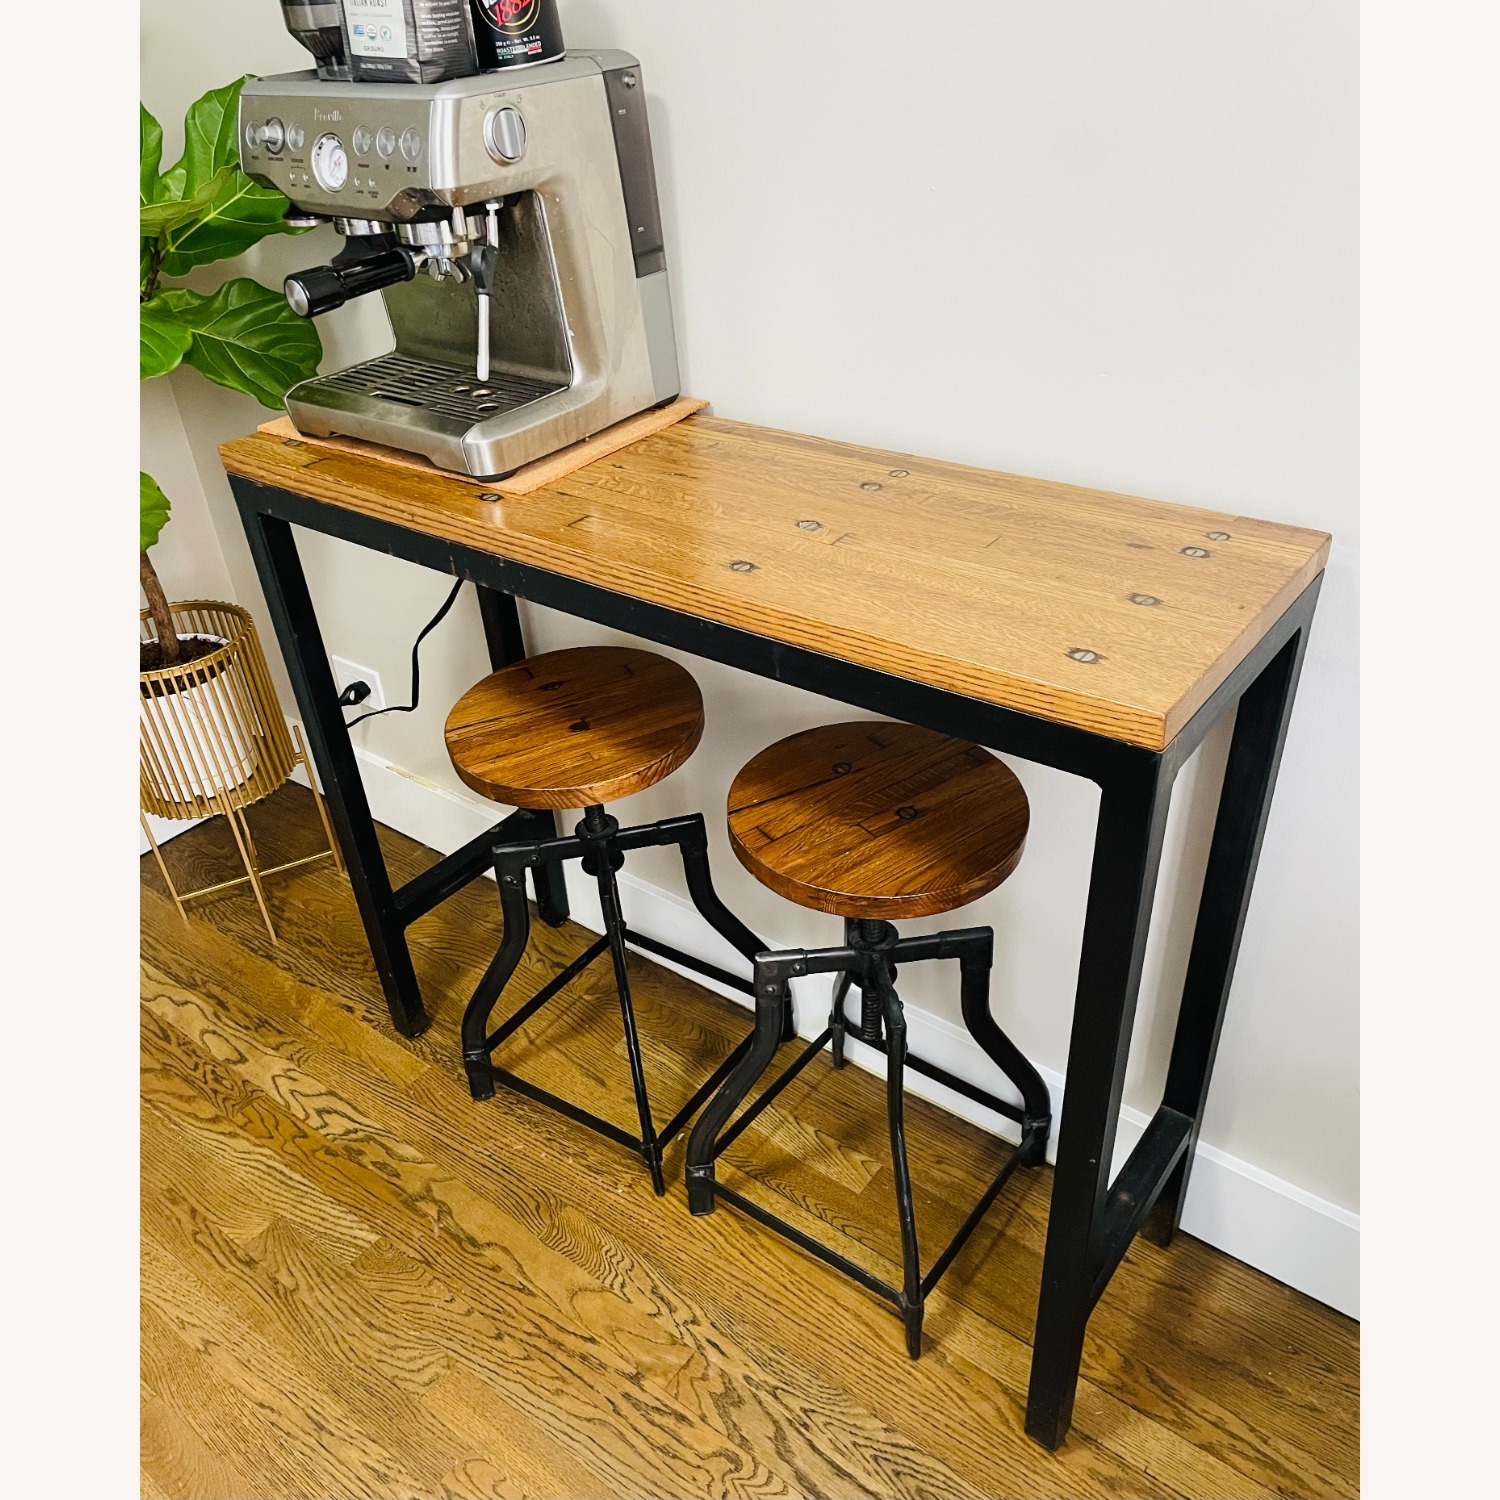 Console Table with Matching Stools - image-1